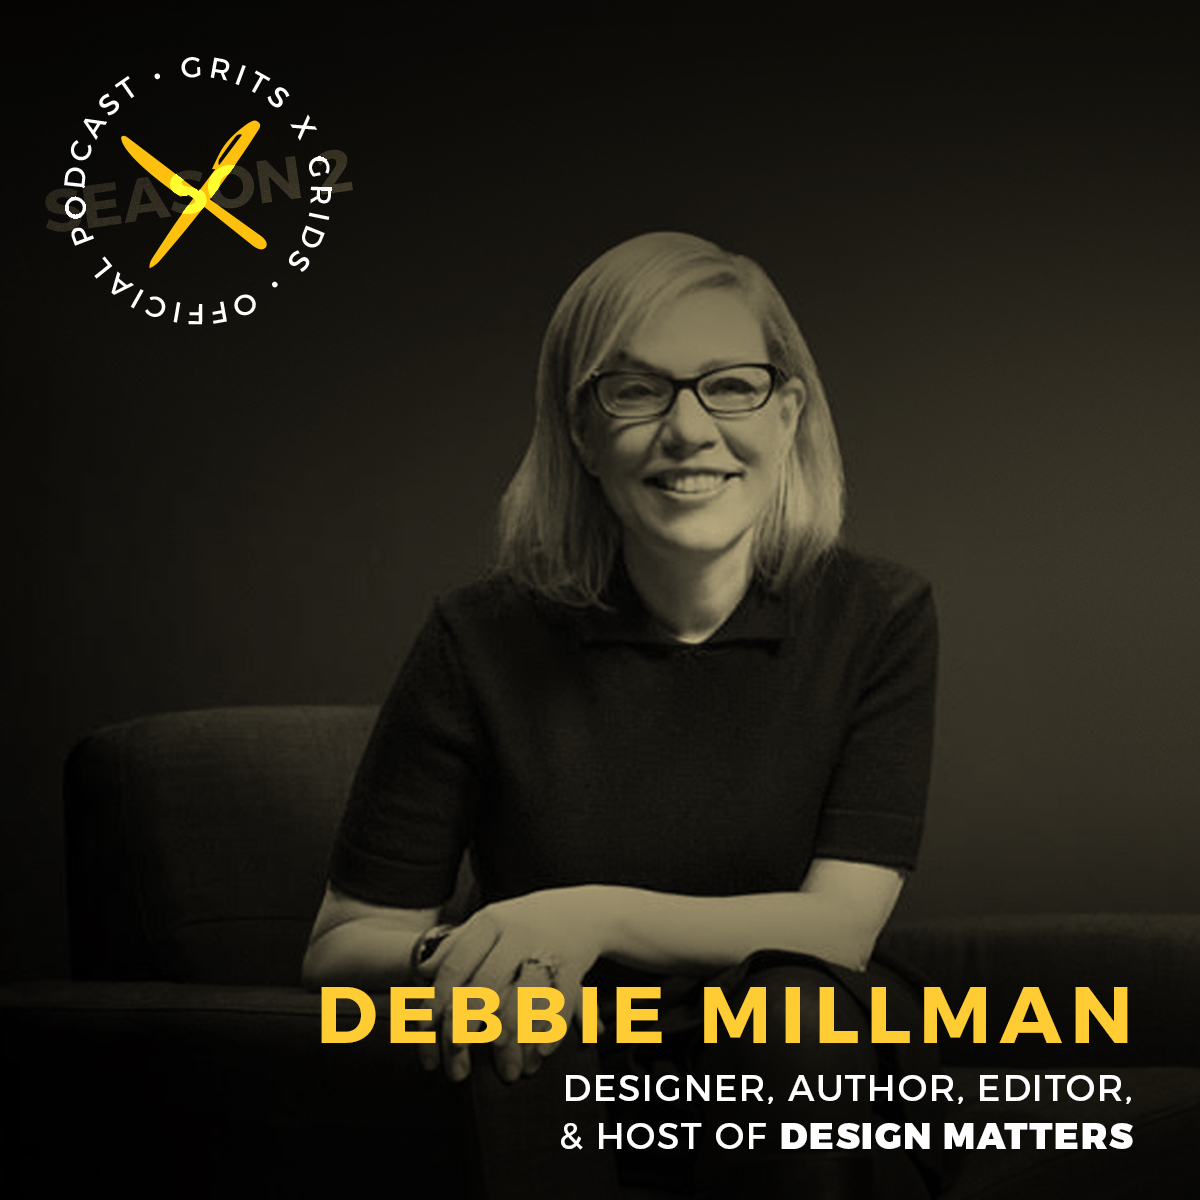 Podcast interview with Debbie Millman of Design Matters, Print Magazine, and more